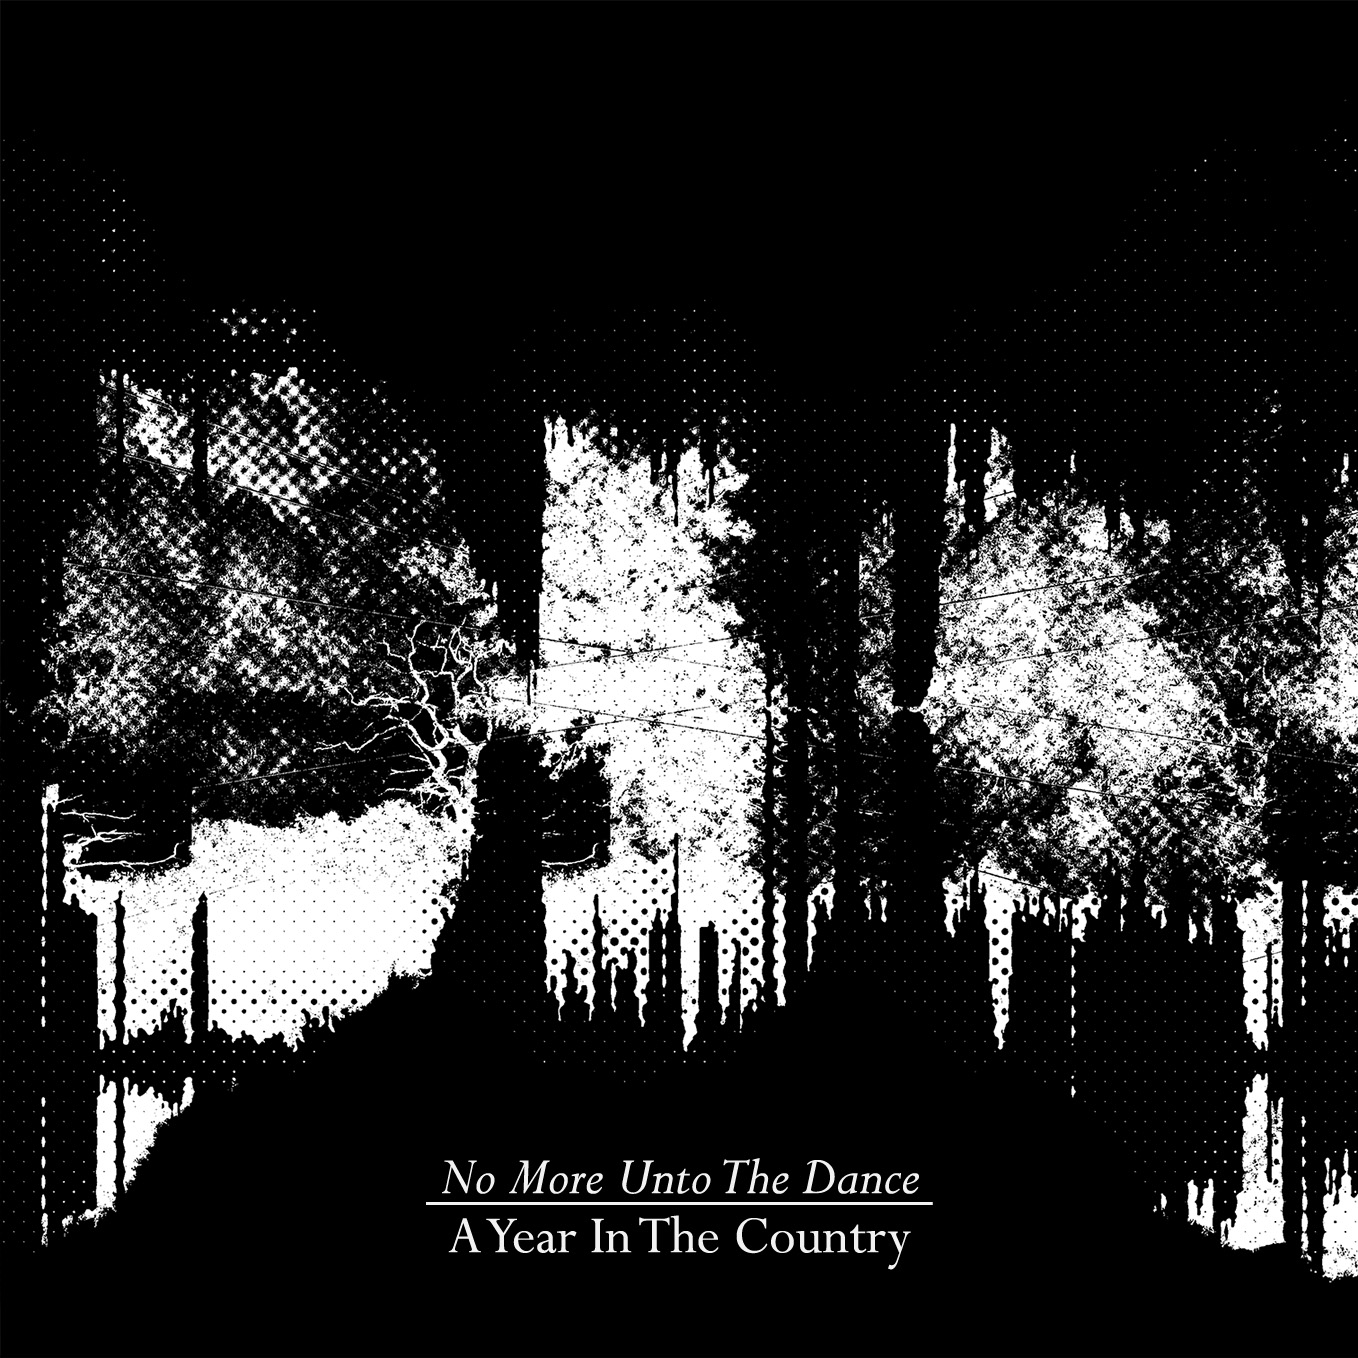 No More Unto The Dance-A Year In The Country